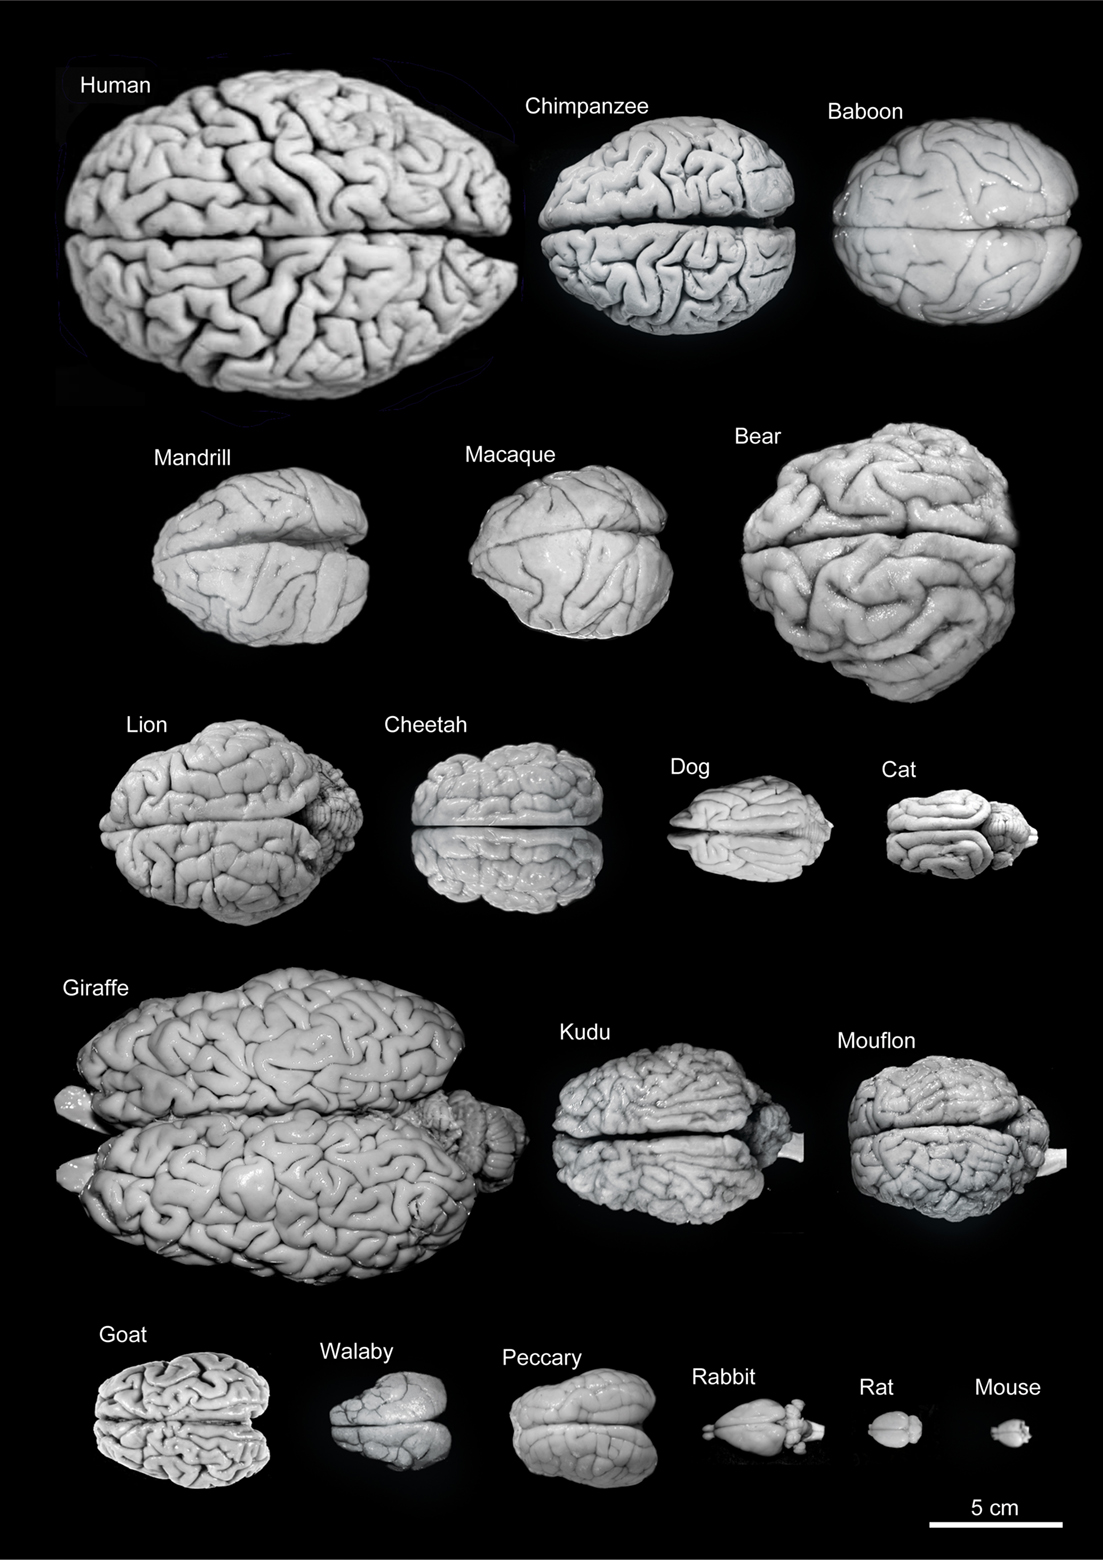 Very cool image showing different brains from different animals